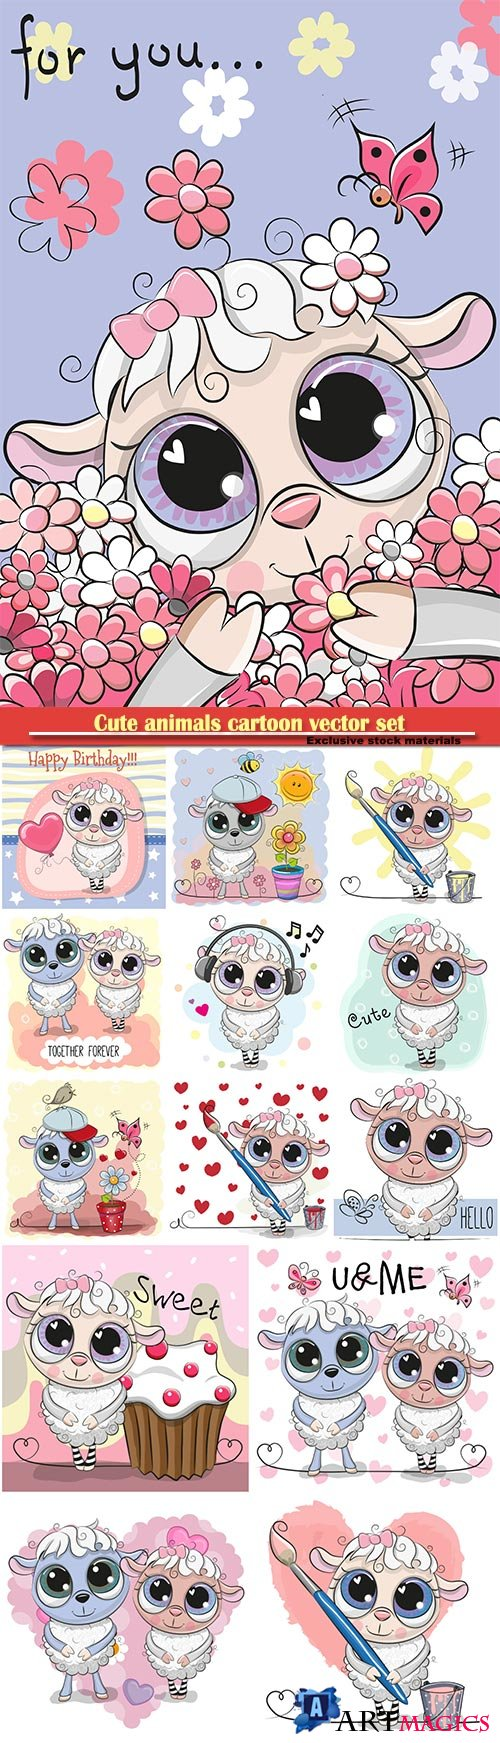 Cute sheep cartoon vector set